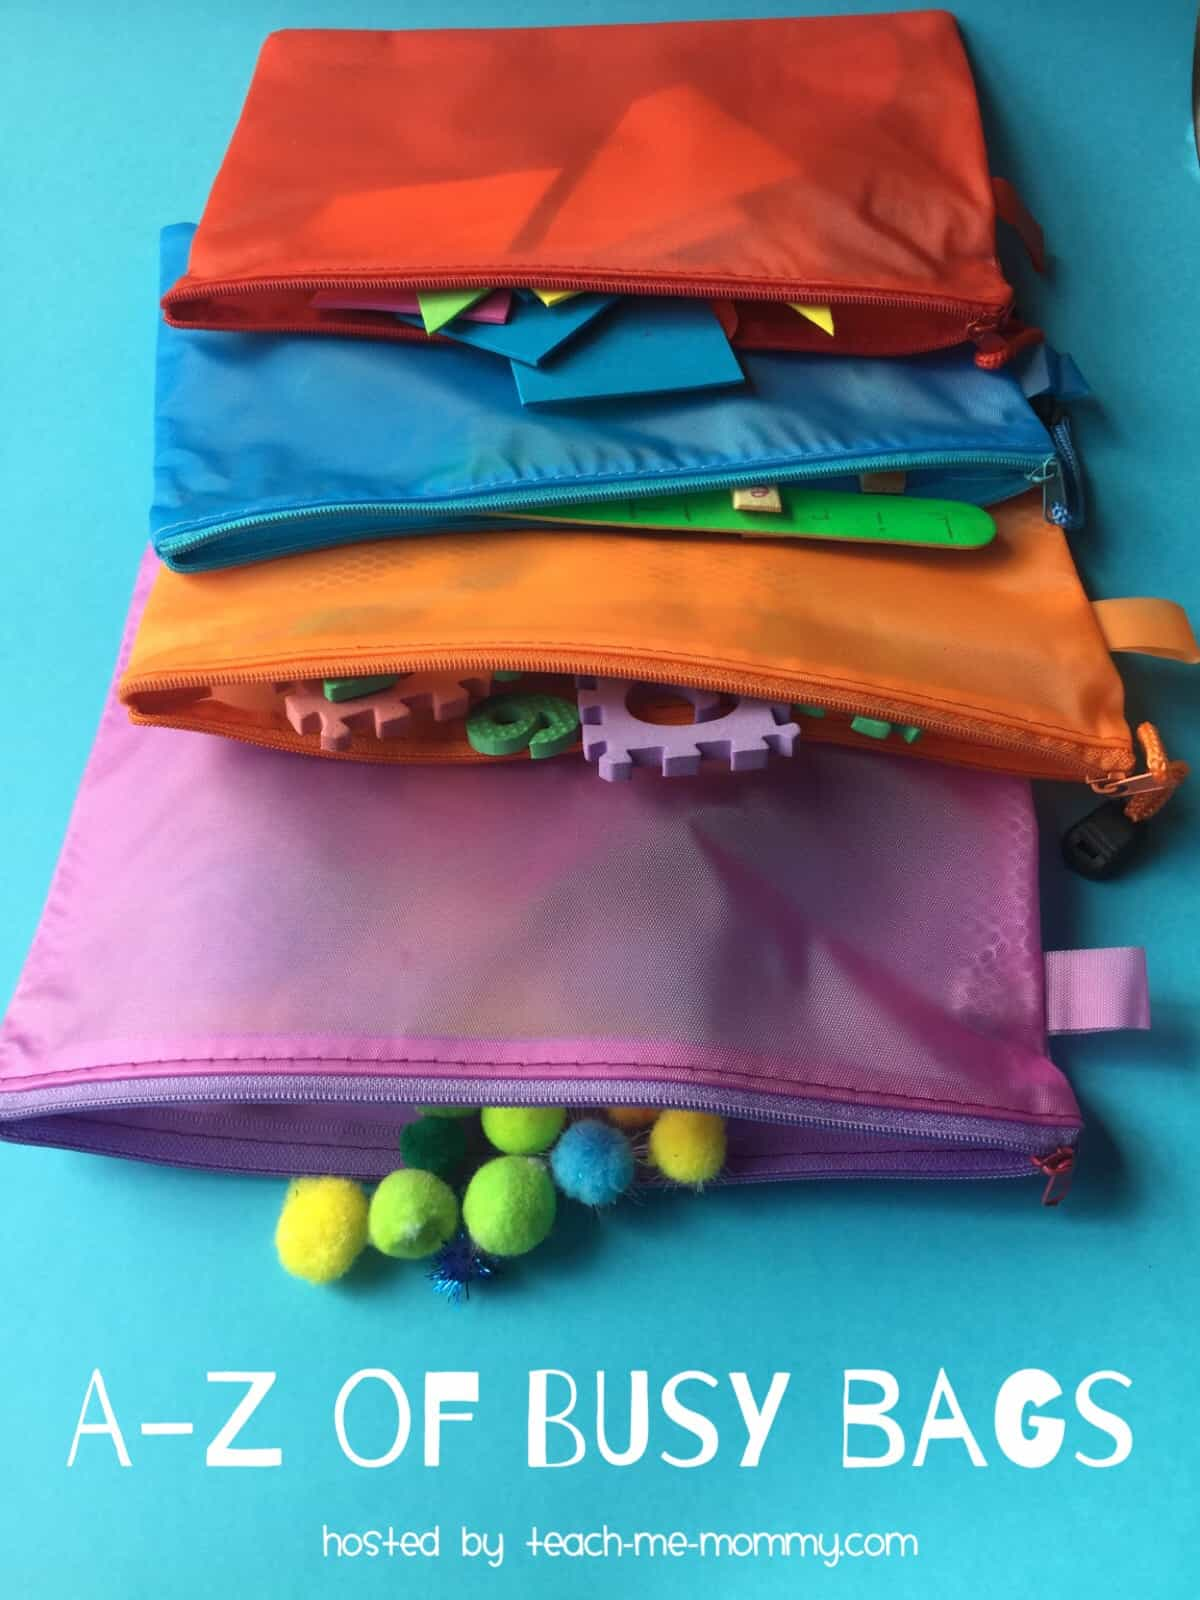 The A-Z of Busy Bags